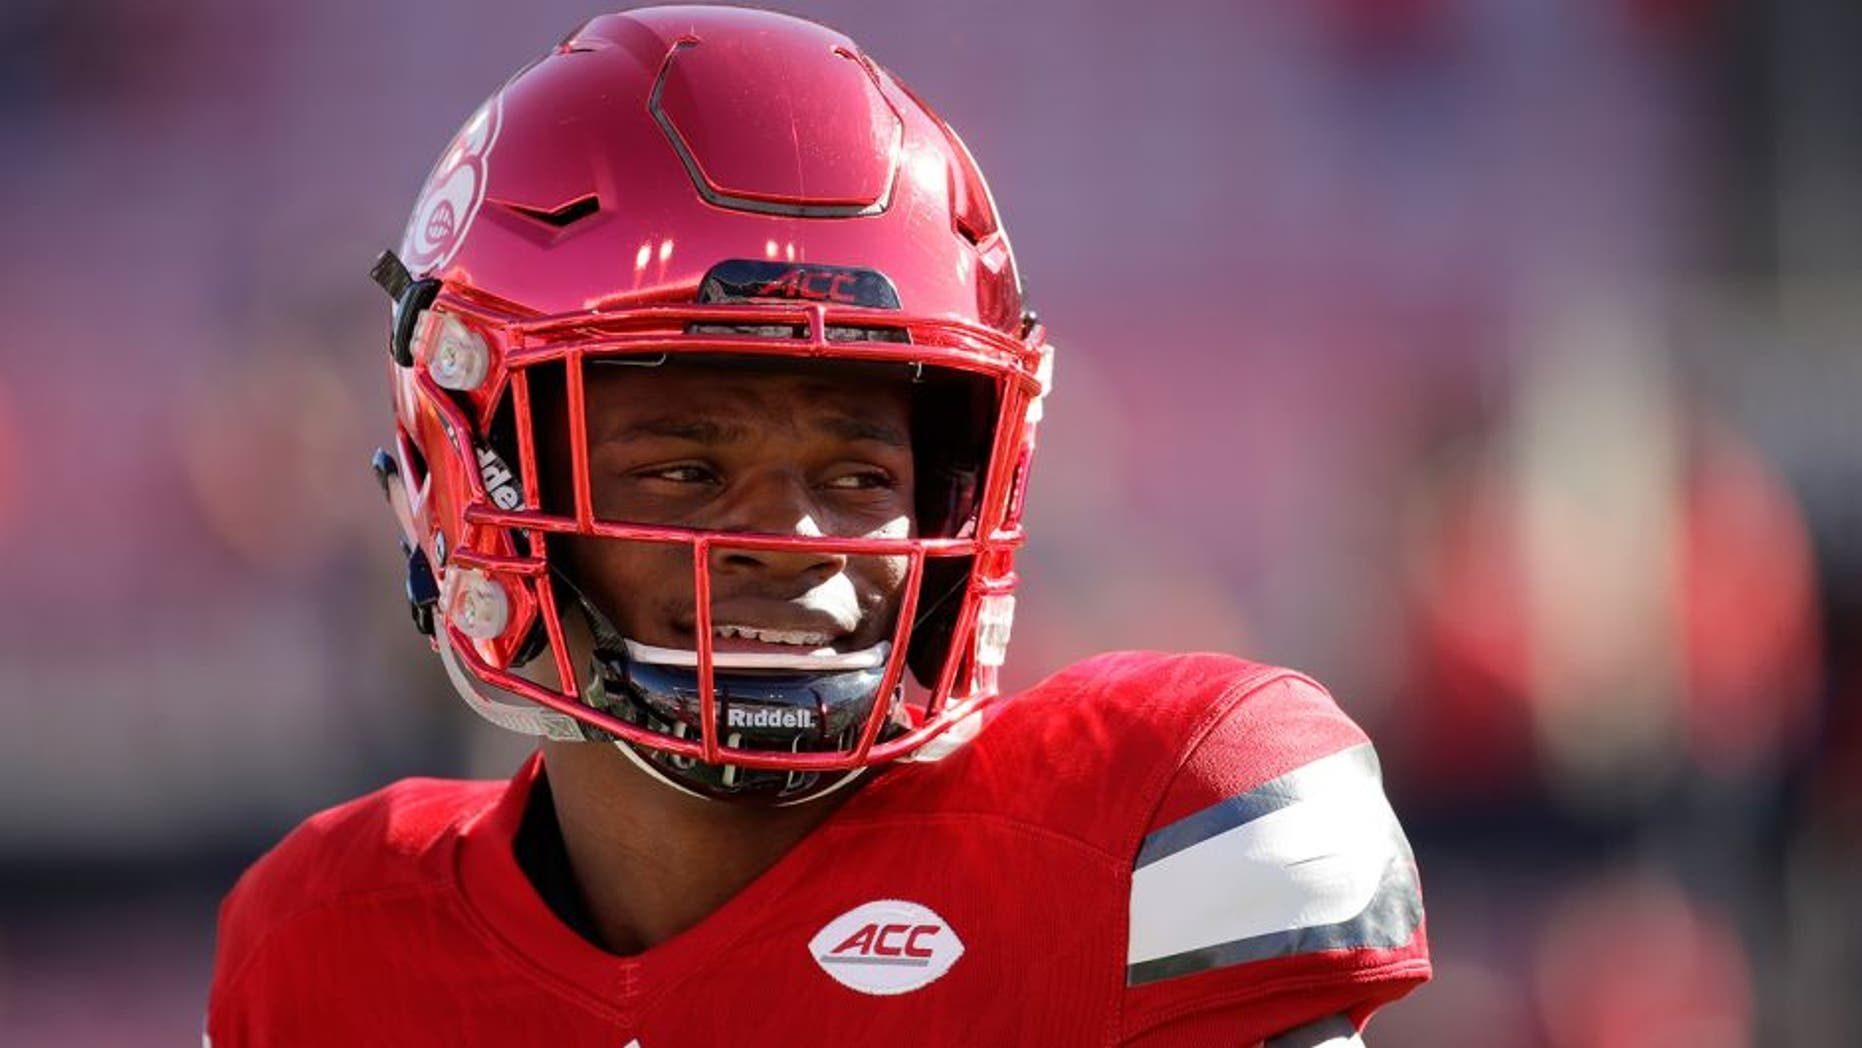 LOUISVILLE, KY - OCTOBER 22: Lamar Jackson #8 of the Louisville Cardinals runs drills before the game against the North Carolina State Wolfpack at Papa John's Cardinal Stadium on October 22, 2016 in Louisville, Kentucky. (Photo by Andy Lyons/Getty Images)